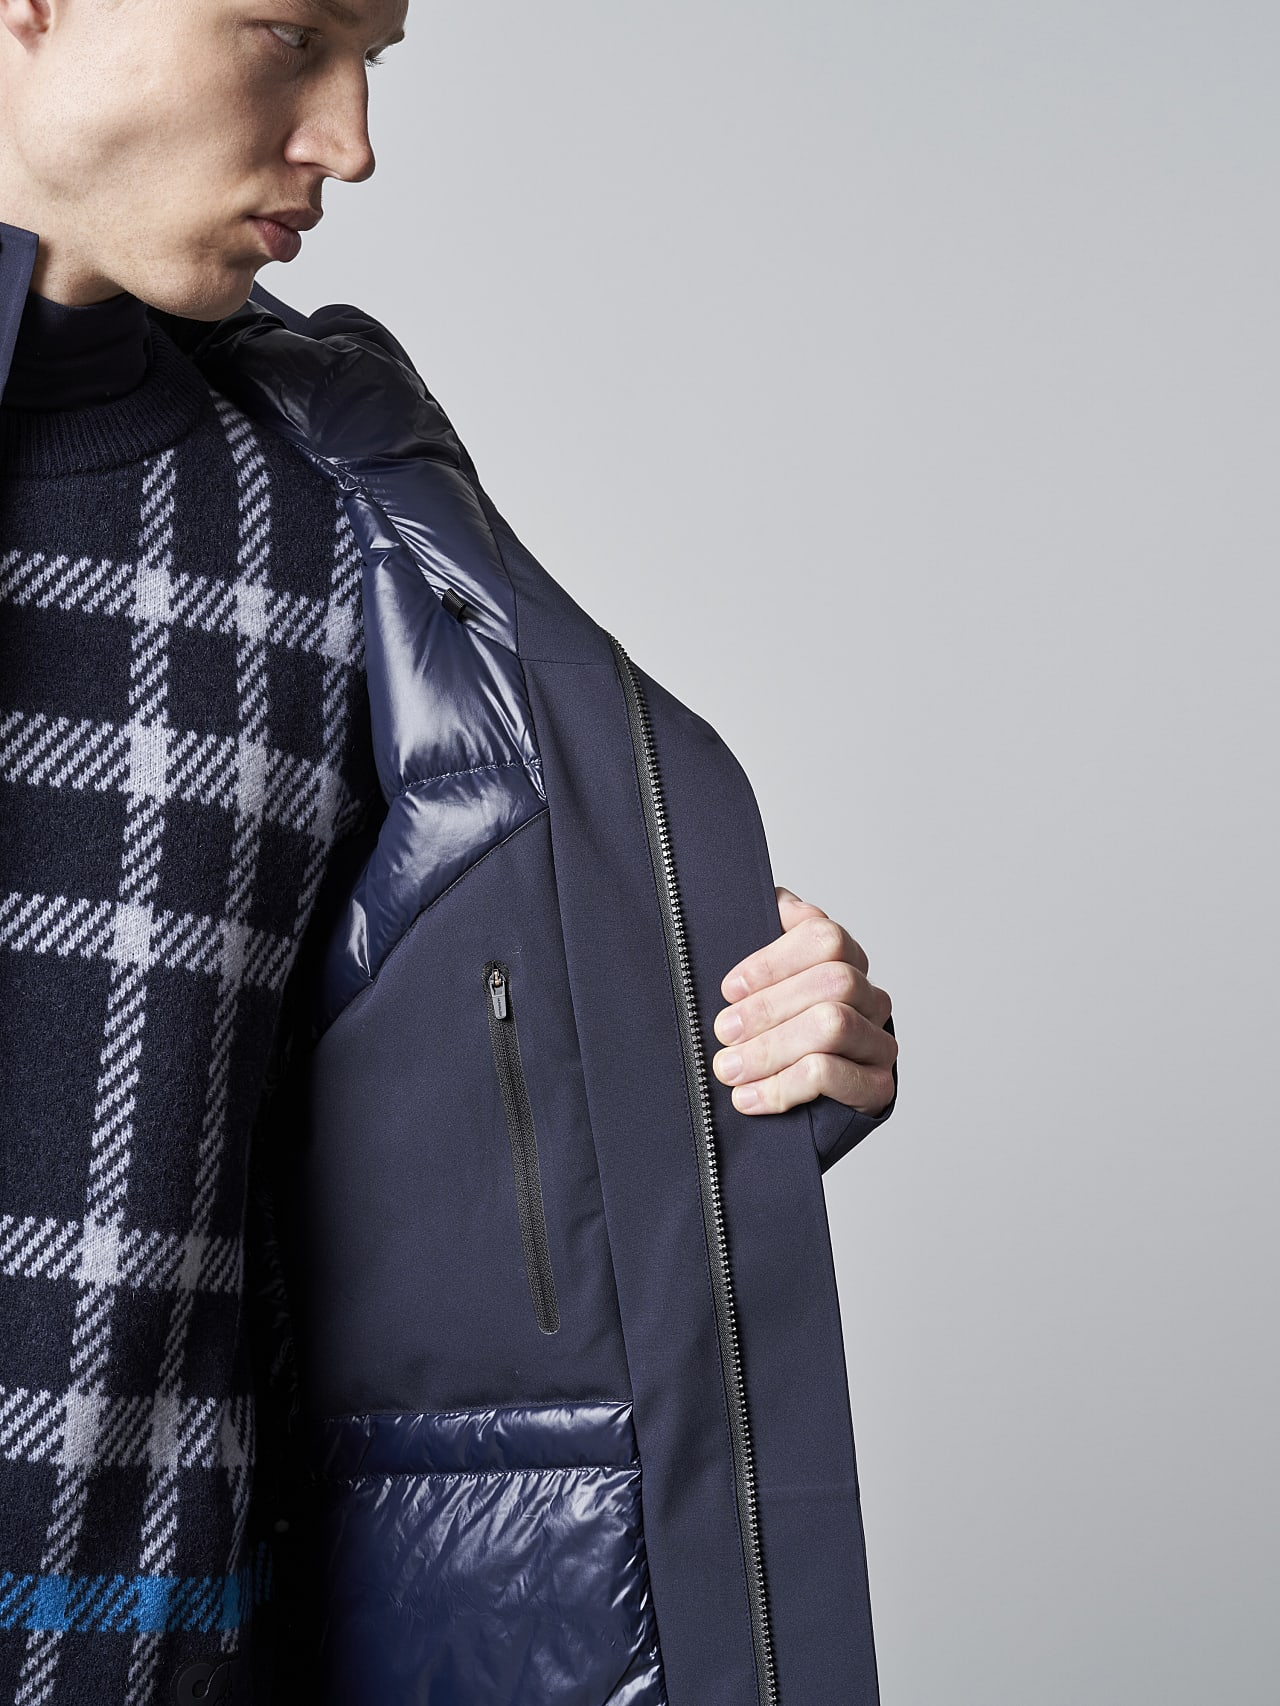 KOOV V6.Y5.02 Packable and Waterproof Winter Parka navy scene7.view.11.name Alpha Tauri